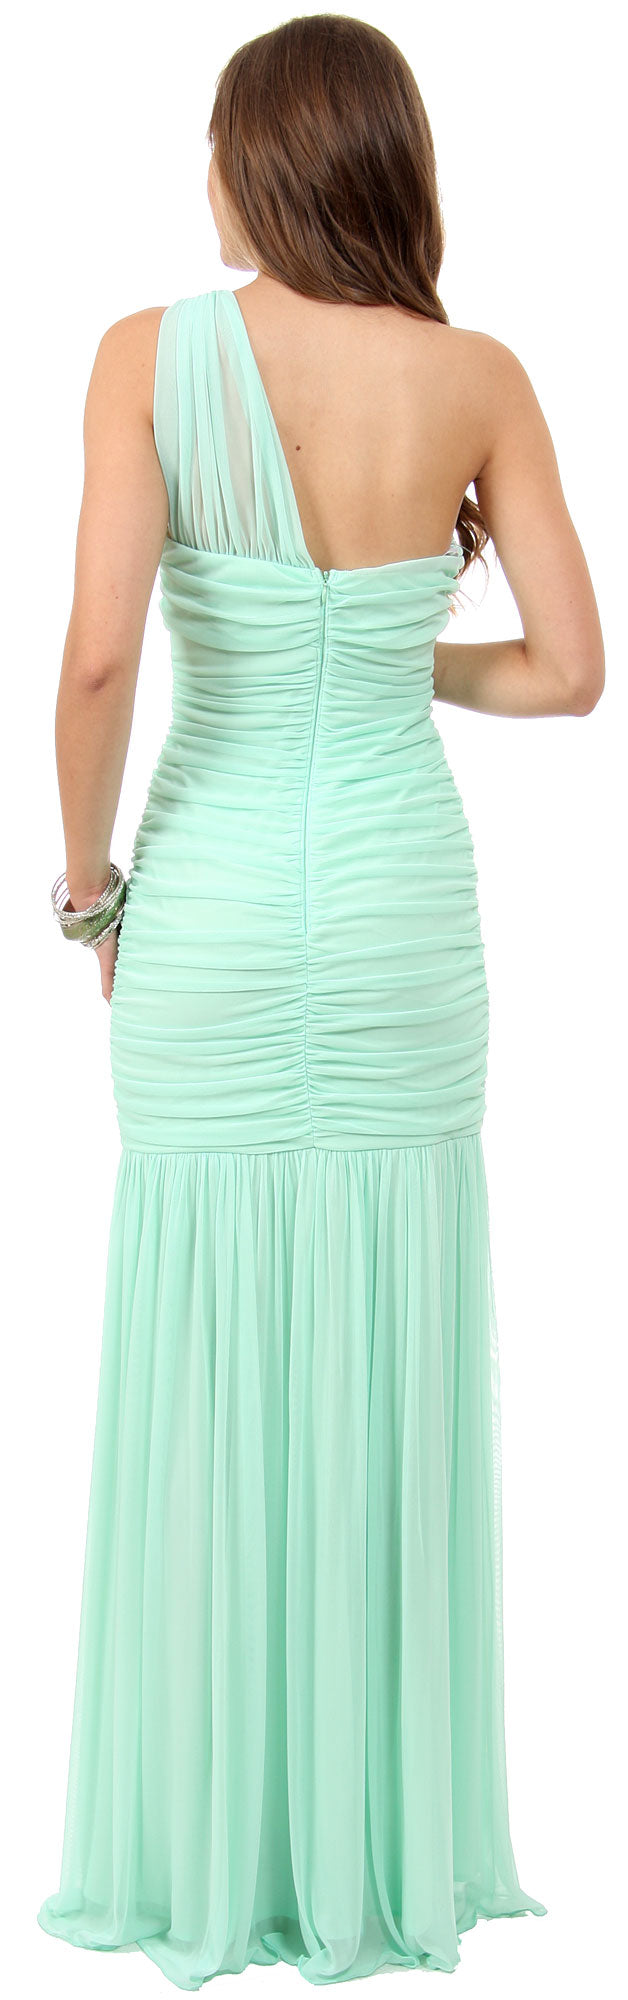 Image of One Shoulder Shirred Mermaid Style Long Formal Prom Dress back in Mint